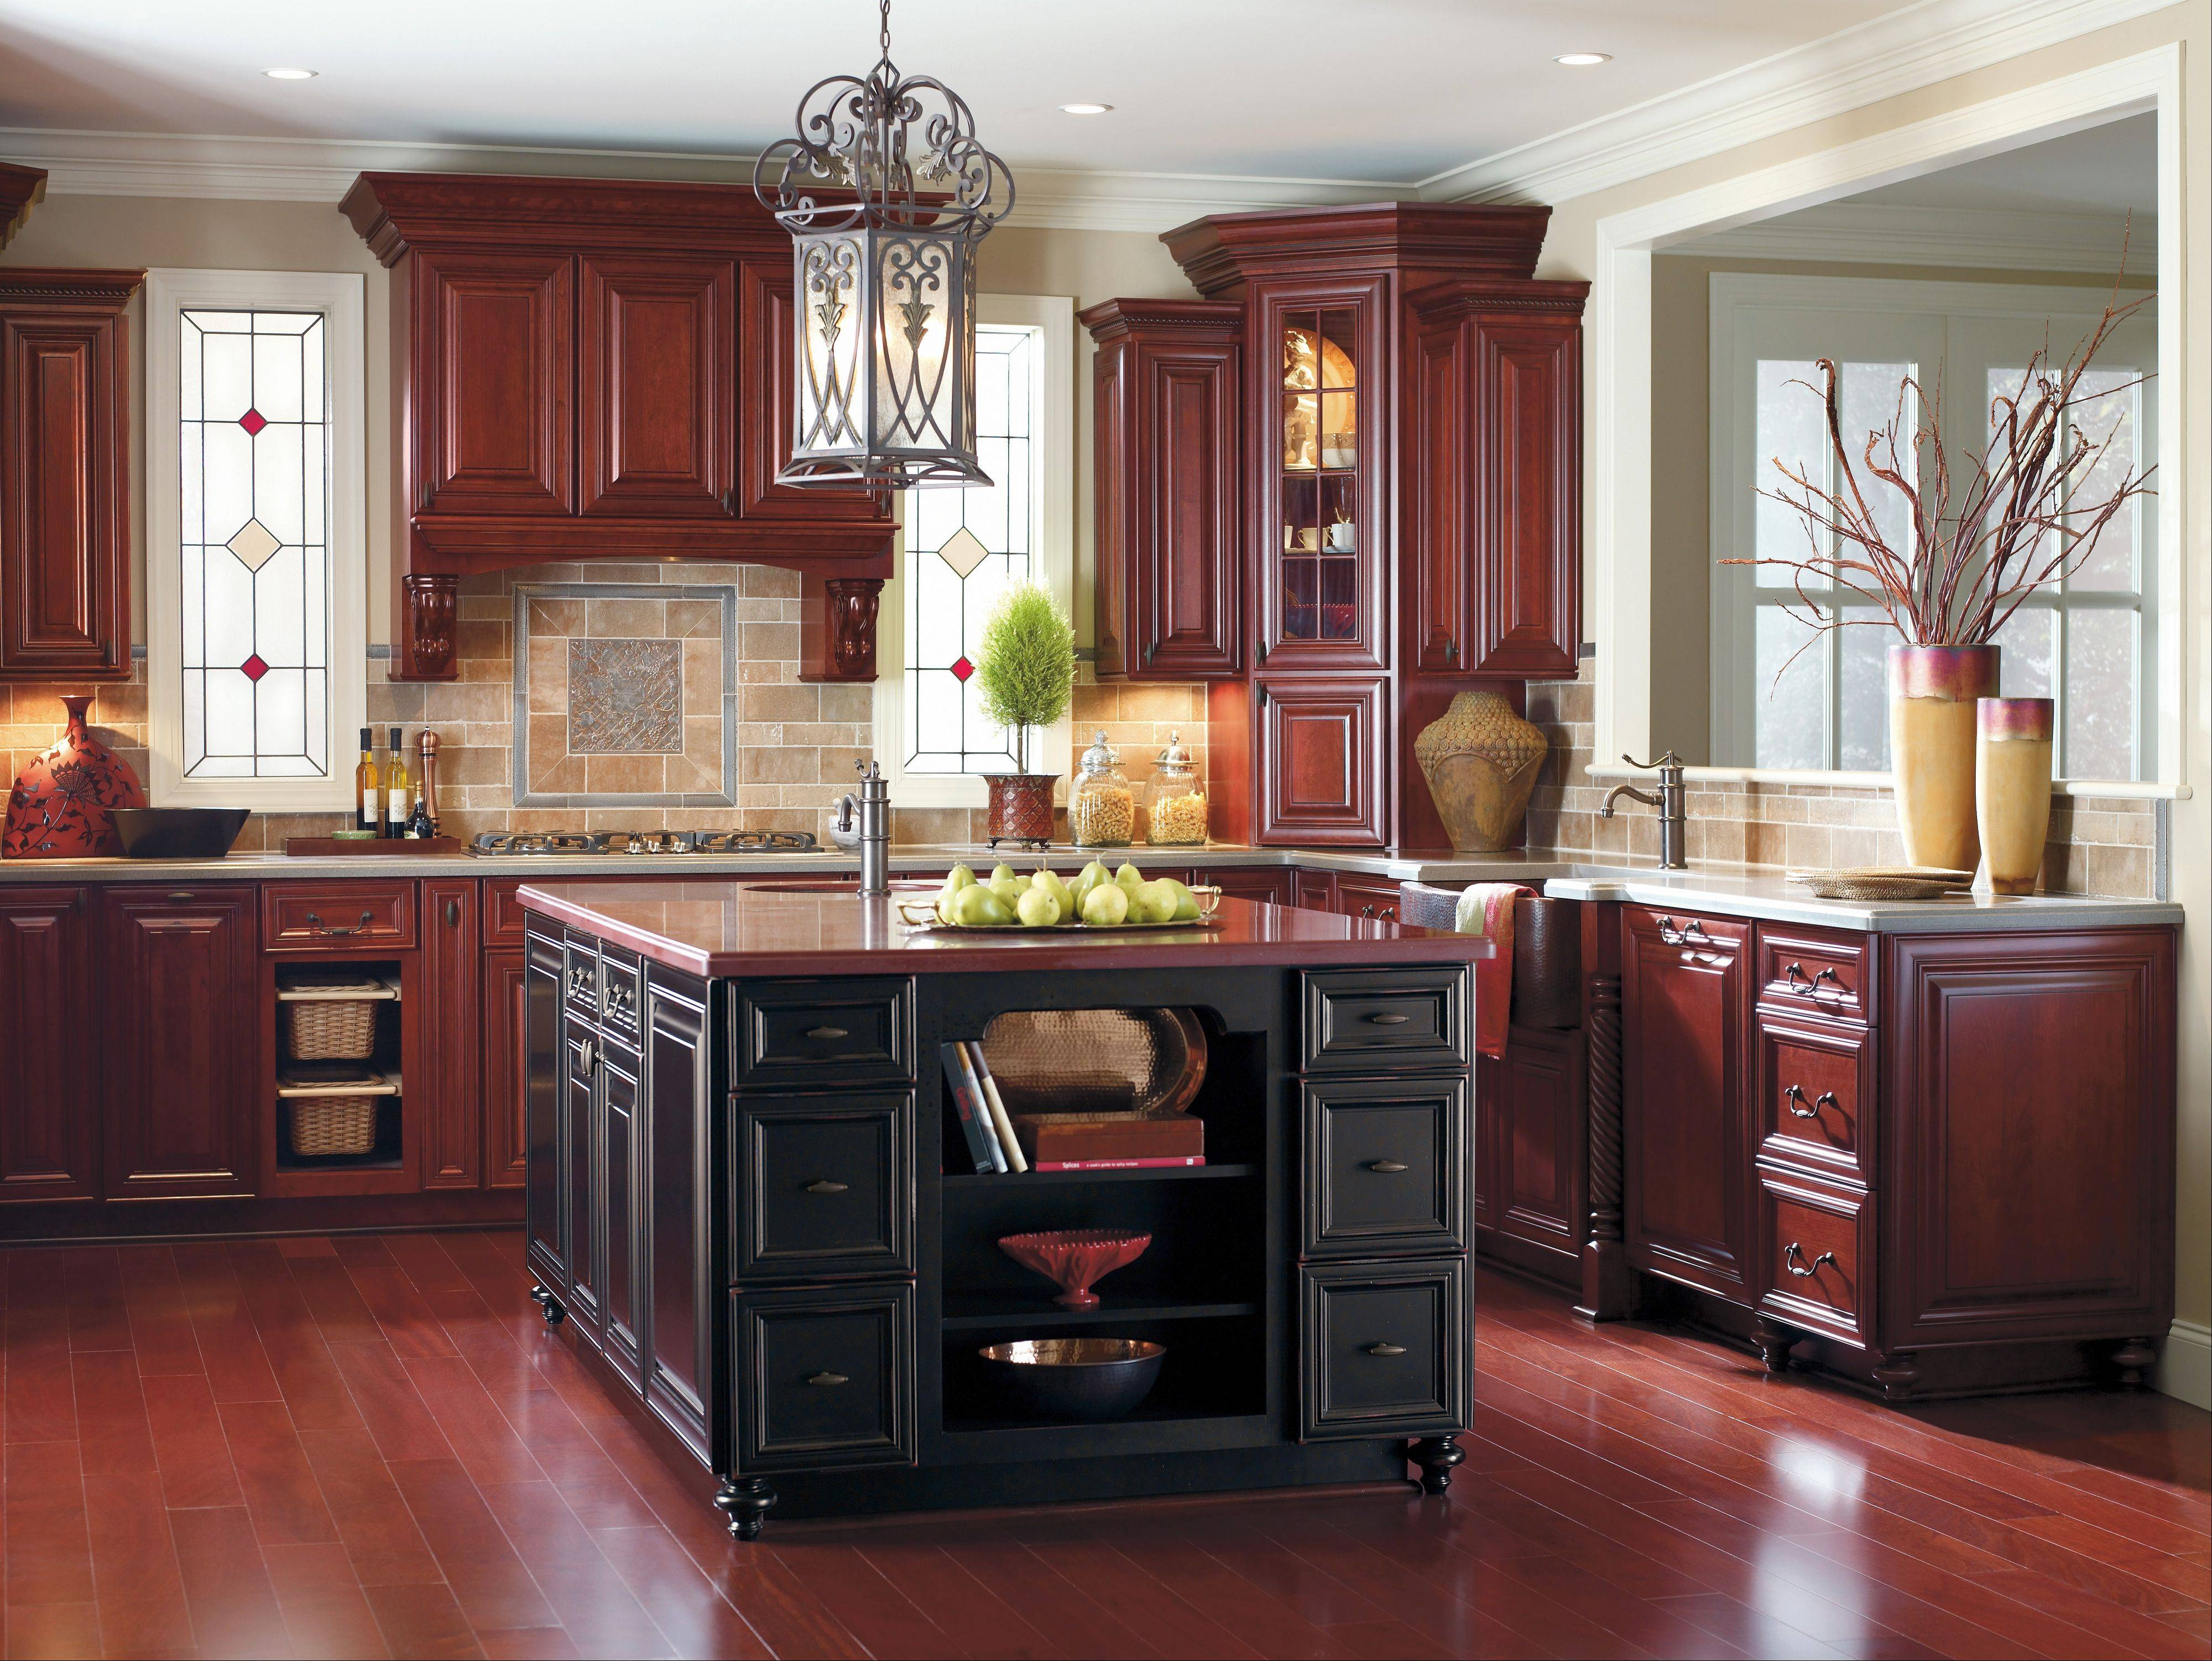 Hardwood is generally the choice for flooring in kitchen remodels.